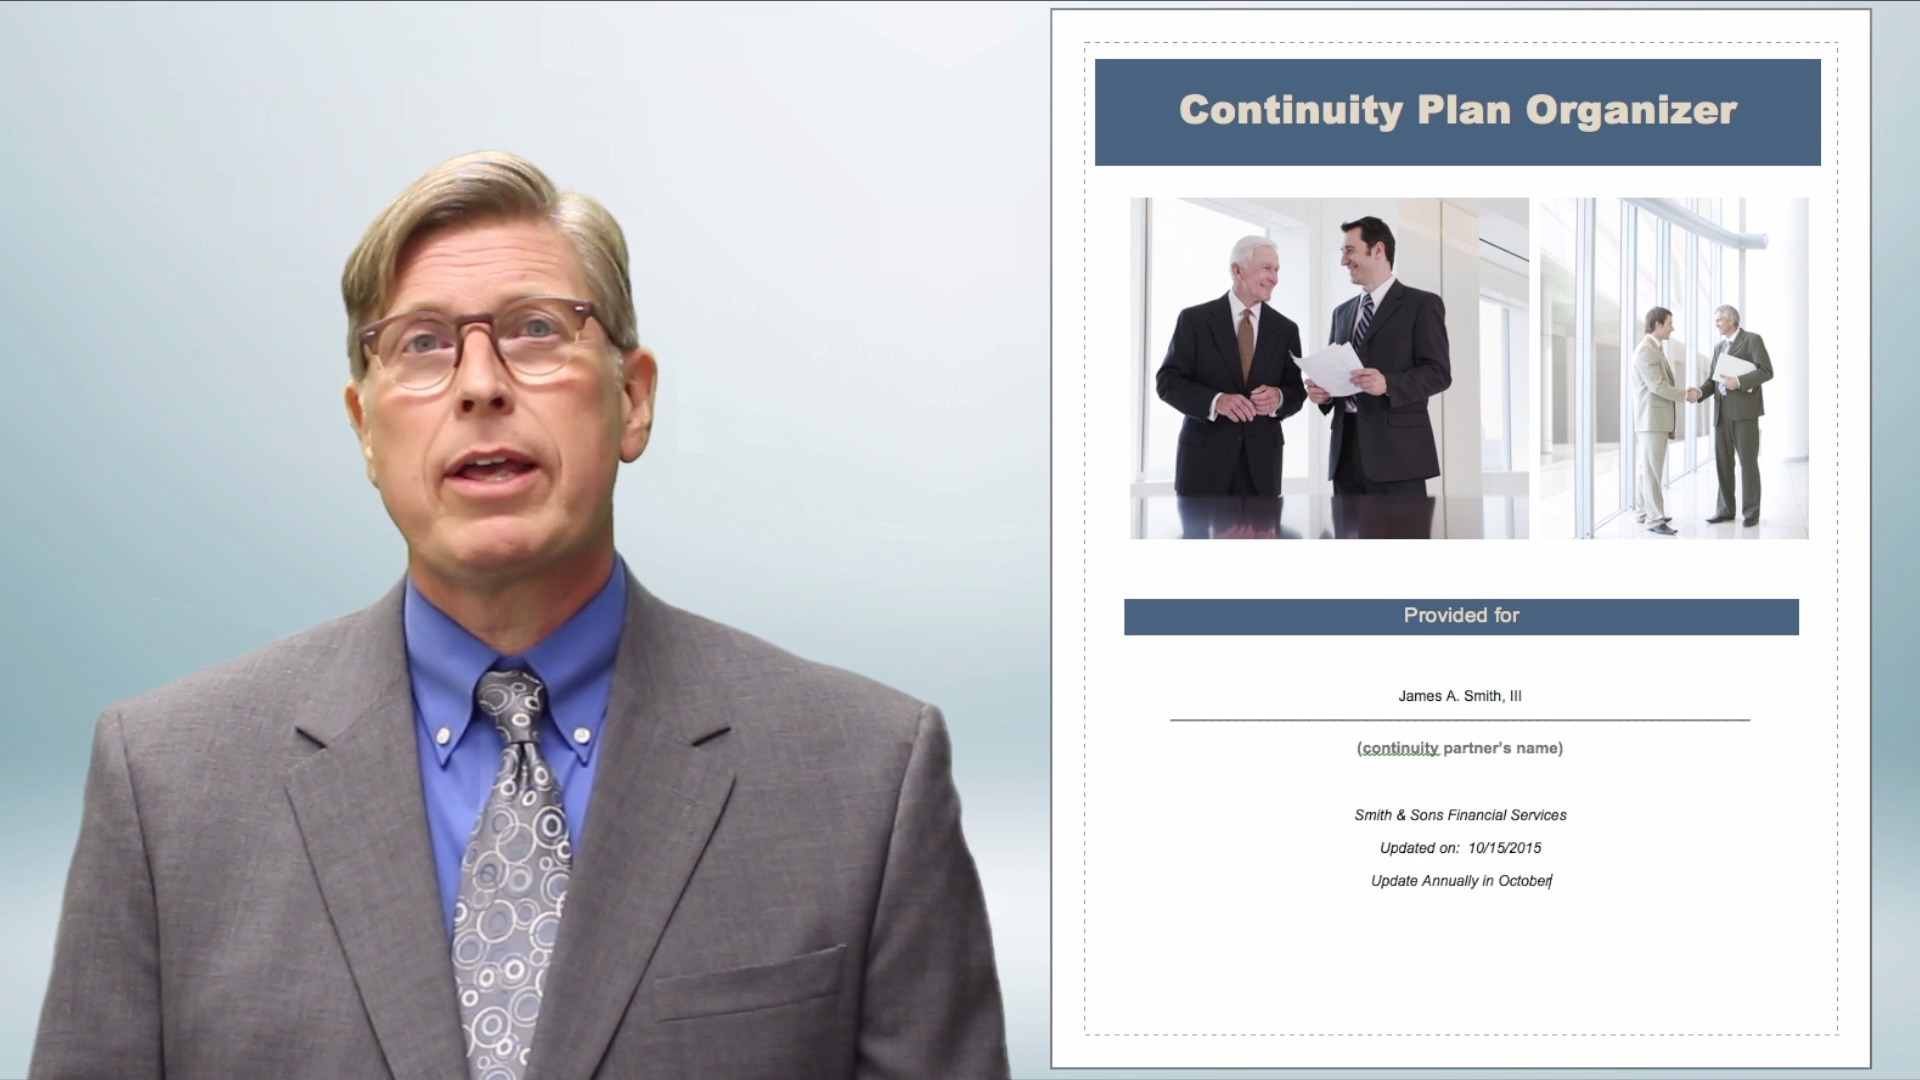 Continuity Planning - Agreement